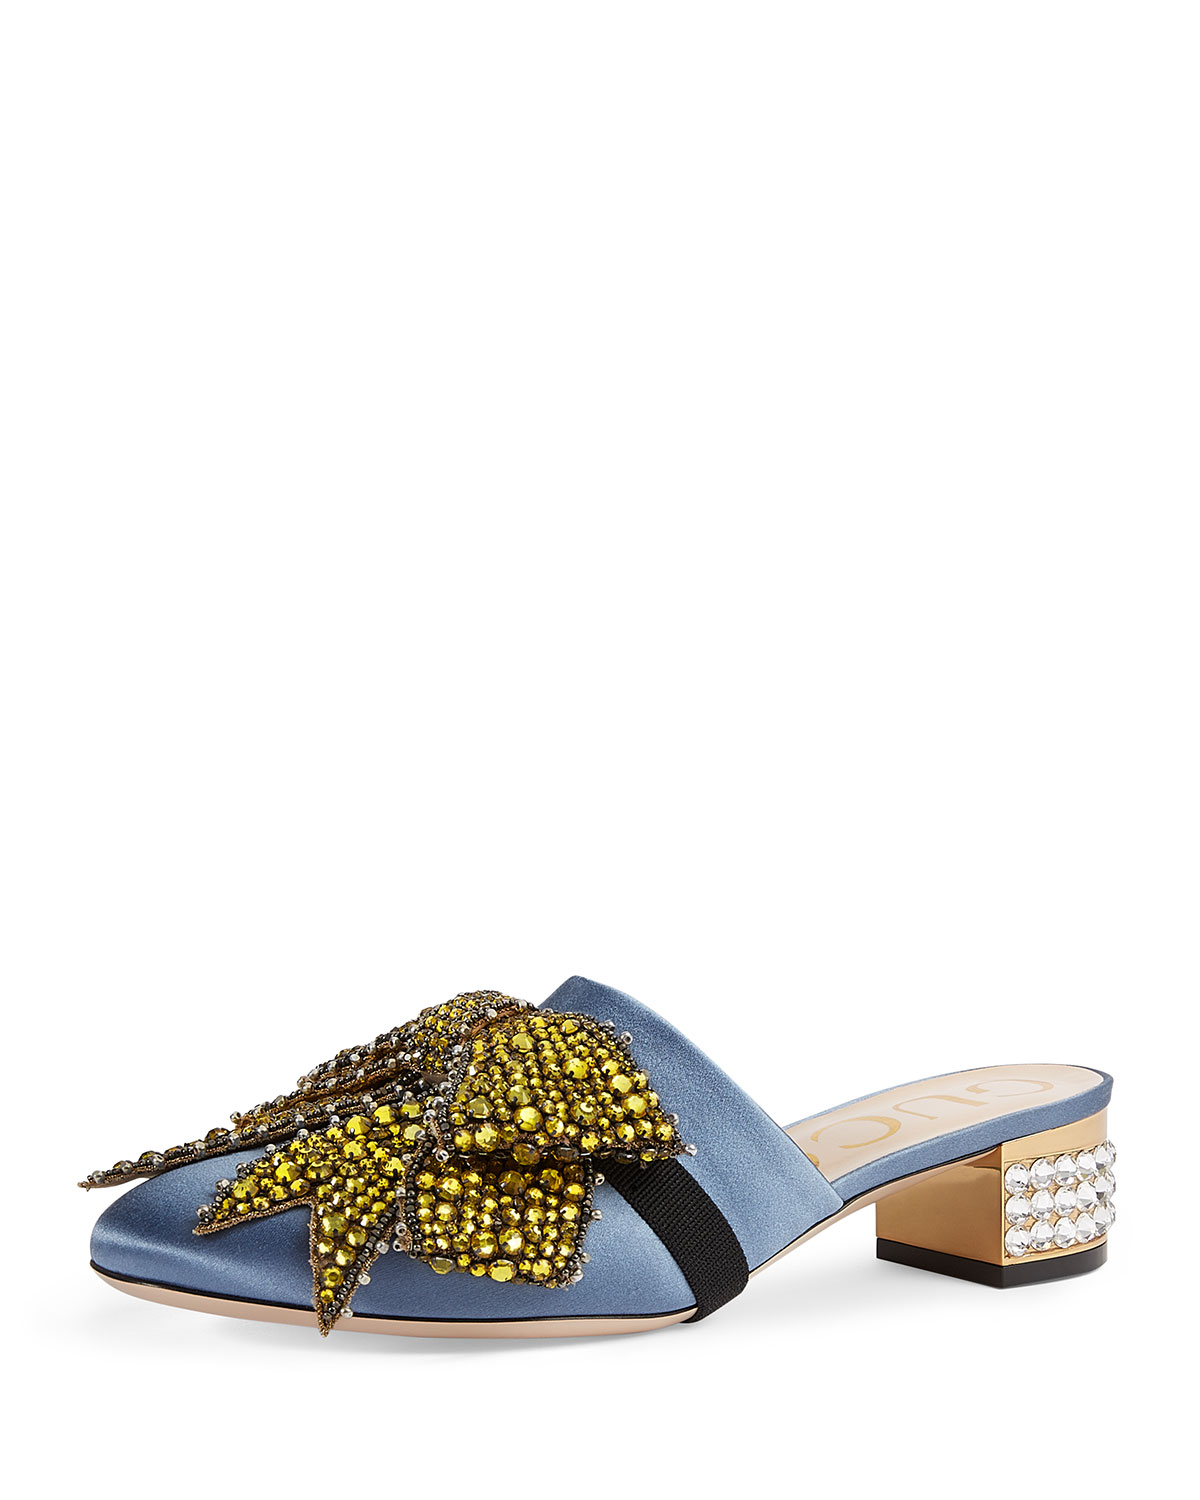 e02274d991d Gucci Bow-Embellished Low-Heel Mule